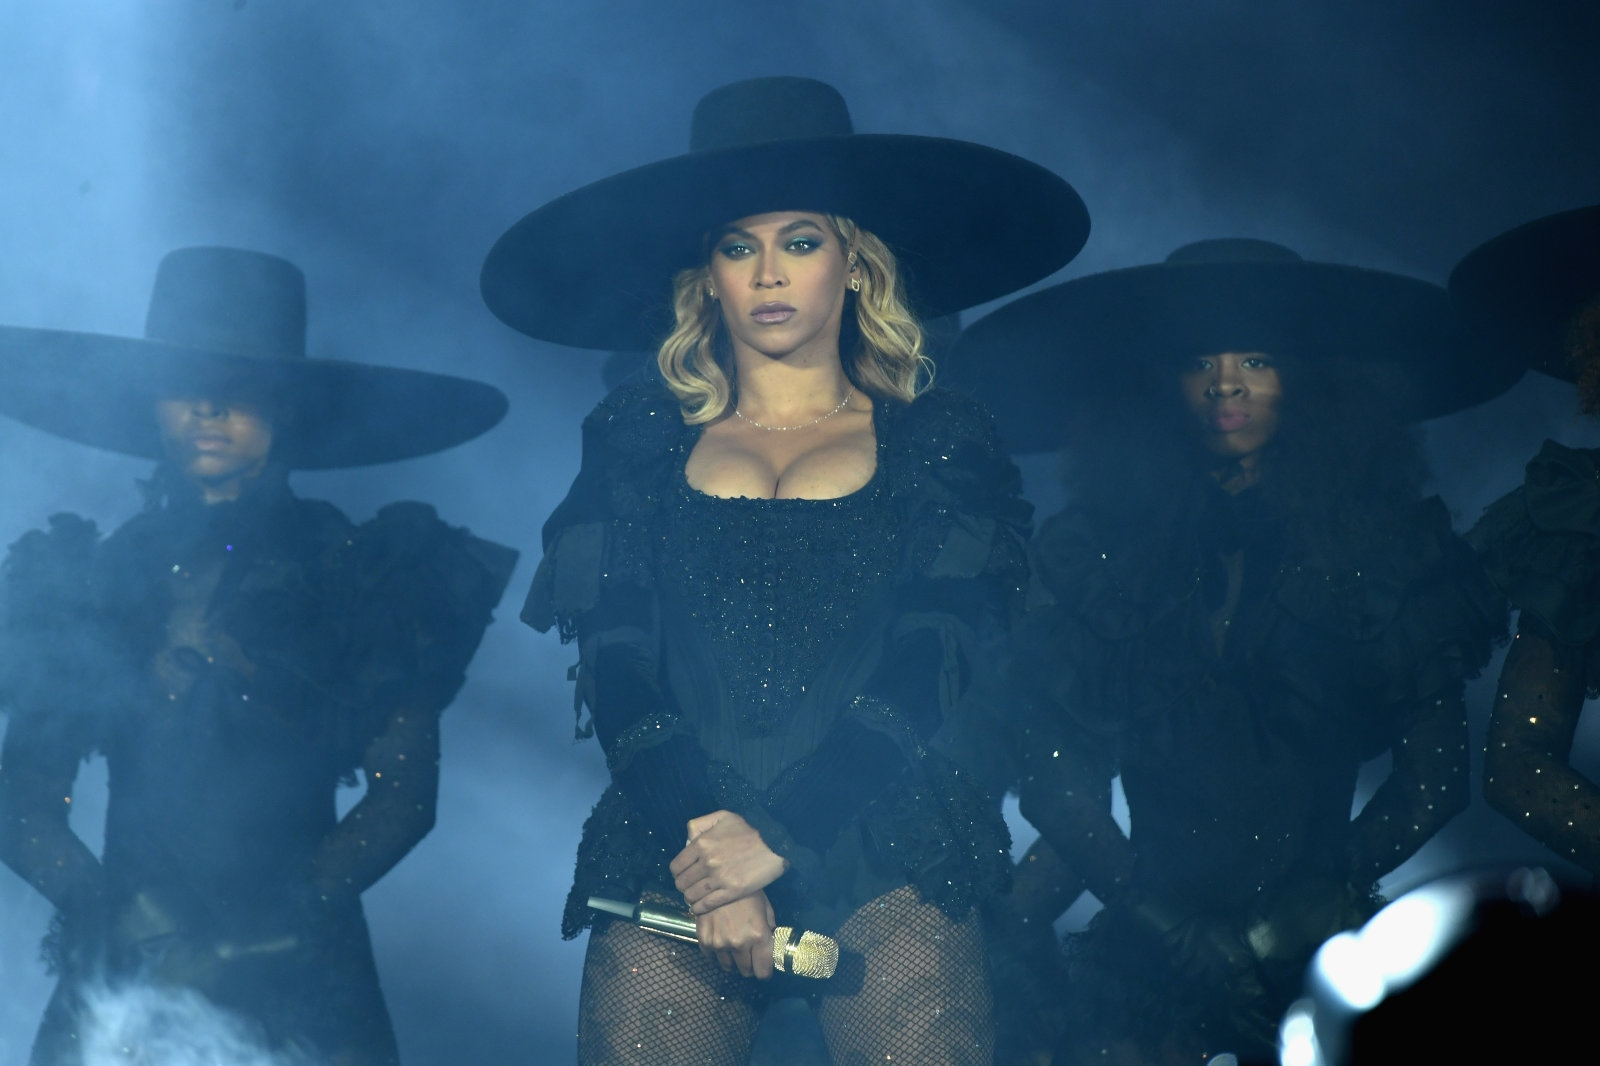 Beyoncé's 'Lemonade' hits Spotify and Apple Music three years late | DeviceDaily.com